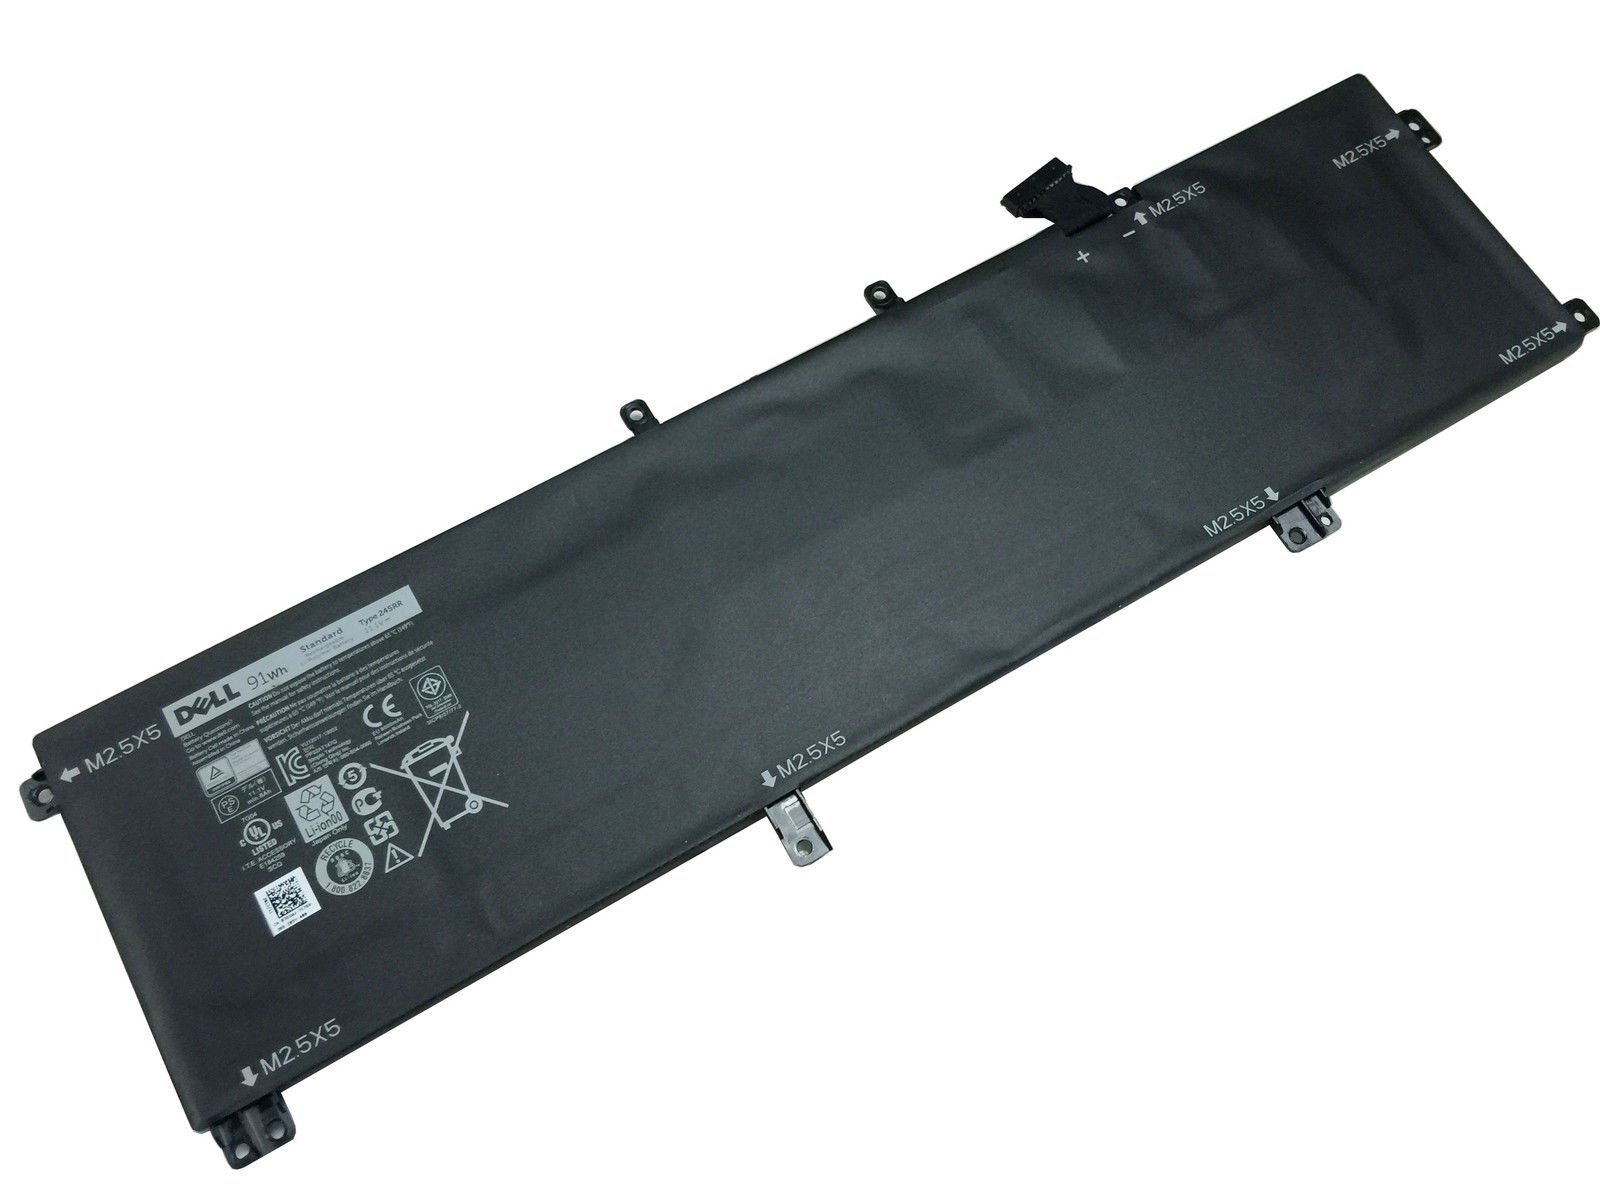 New Genuine Dell XPS 15 9530 Precision M3800 11.1V 91 Wh Battery 7D1WJ 07D1WJ by FOR DELL